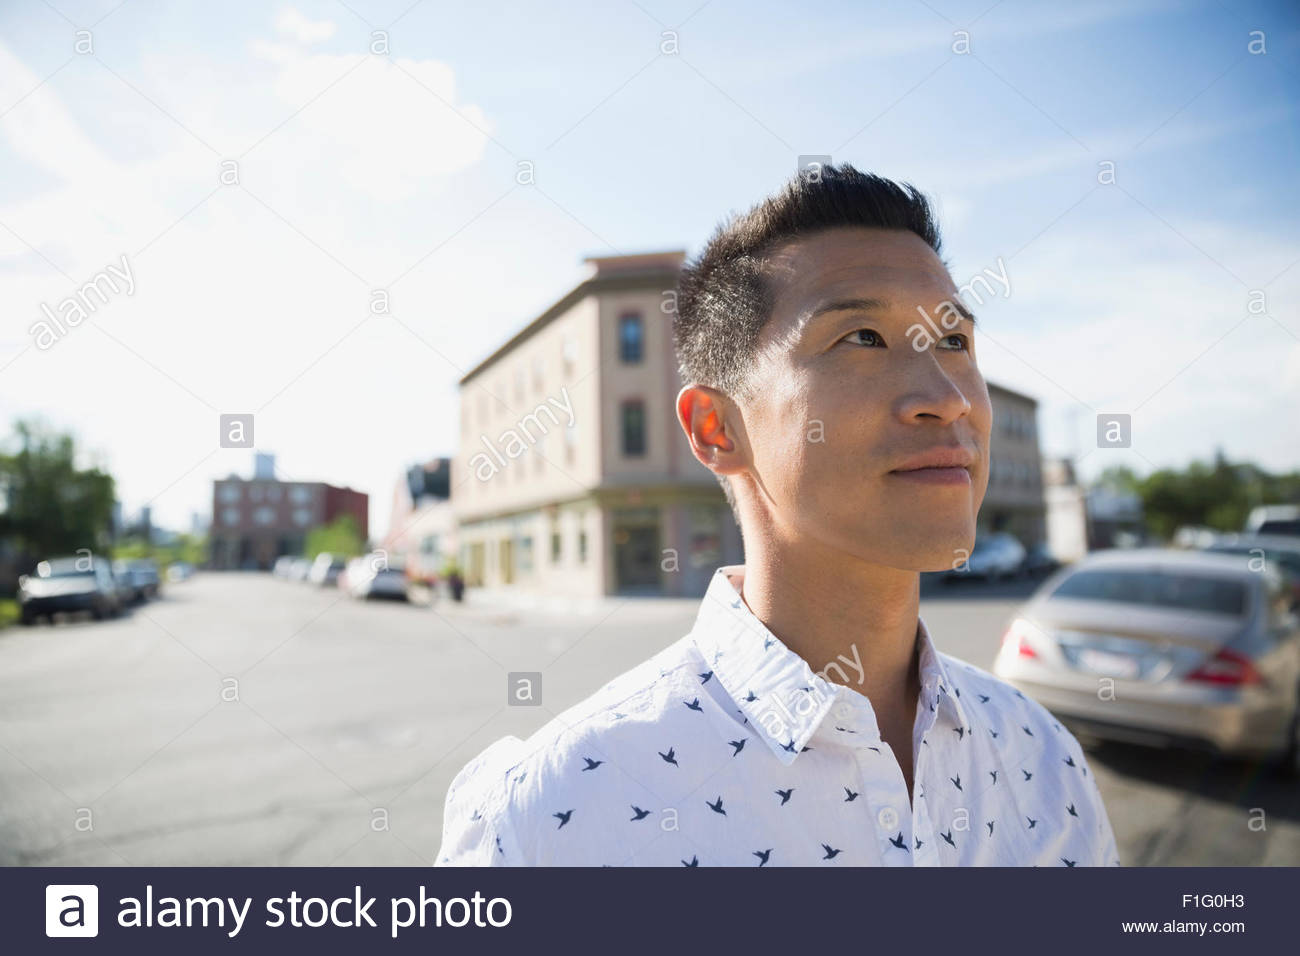 Pensive man looking up on sunny street Stock Photo